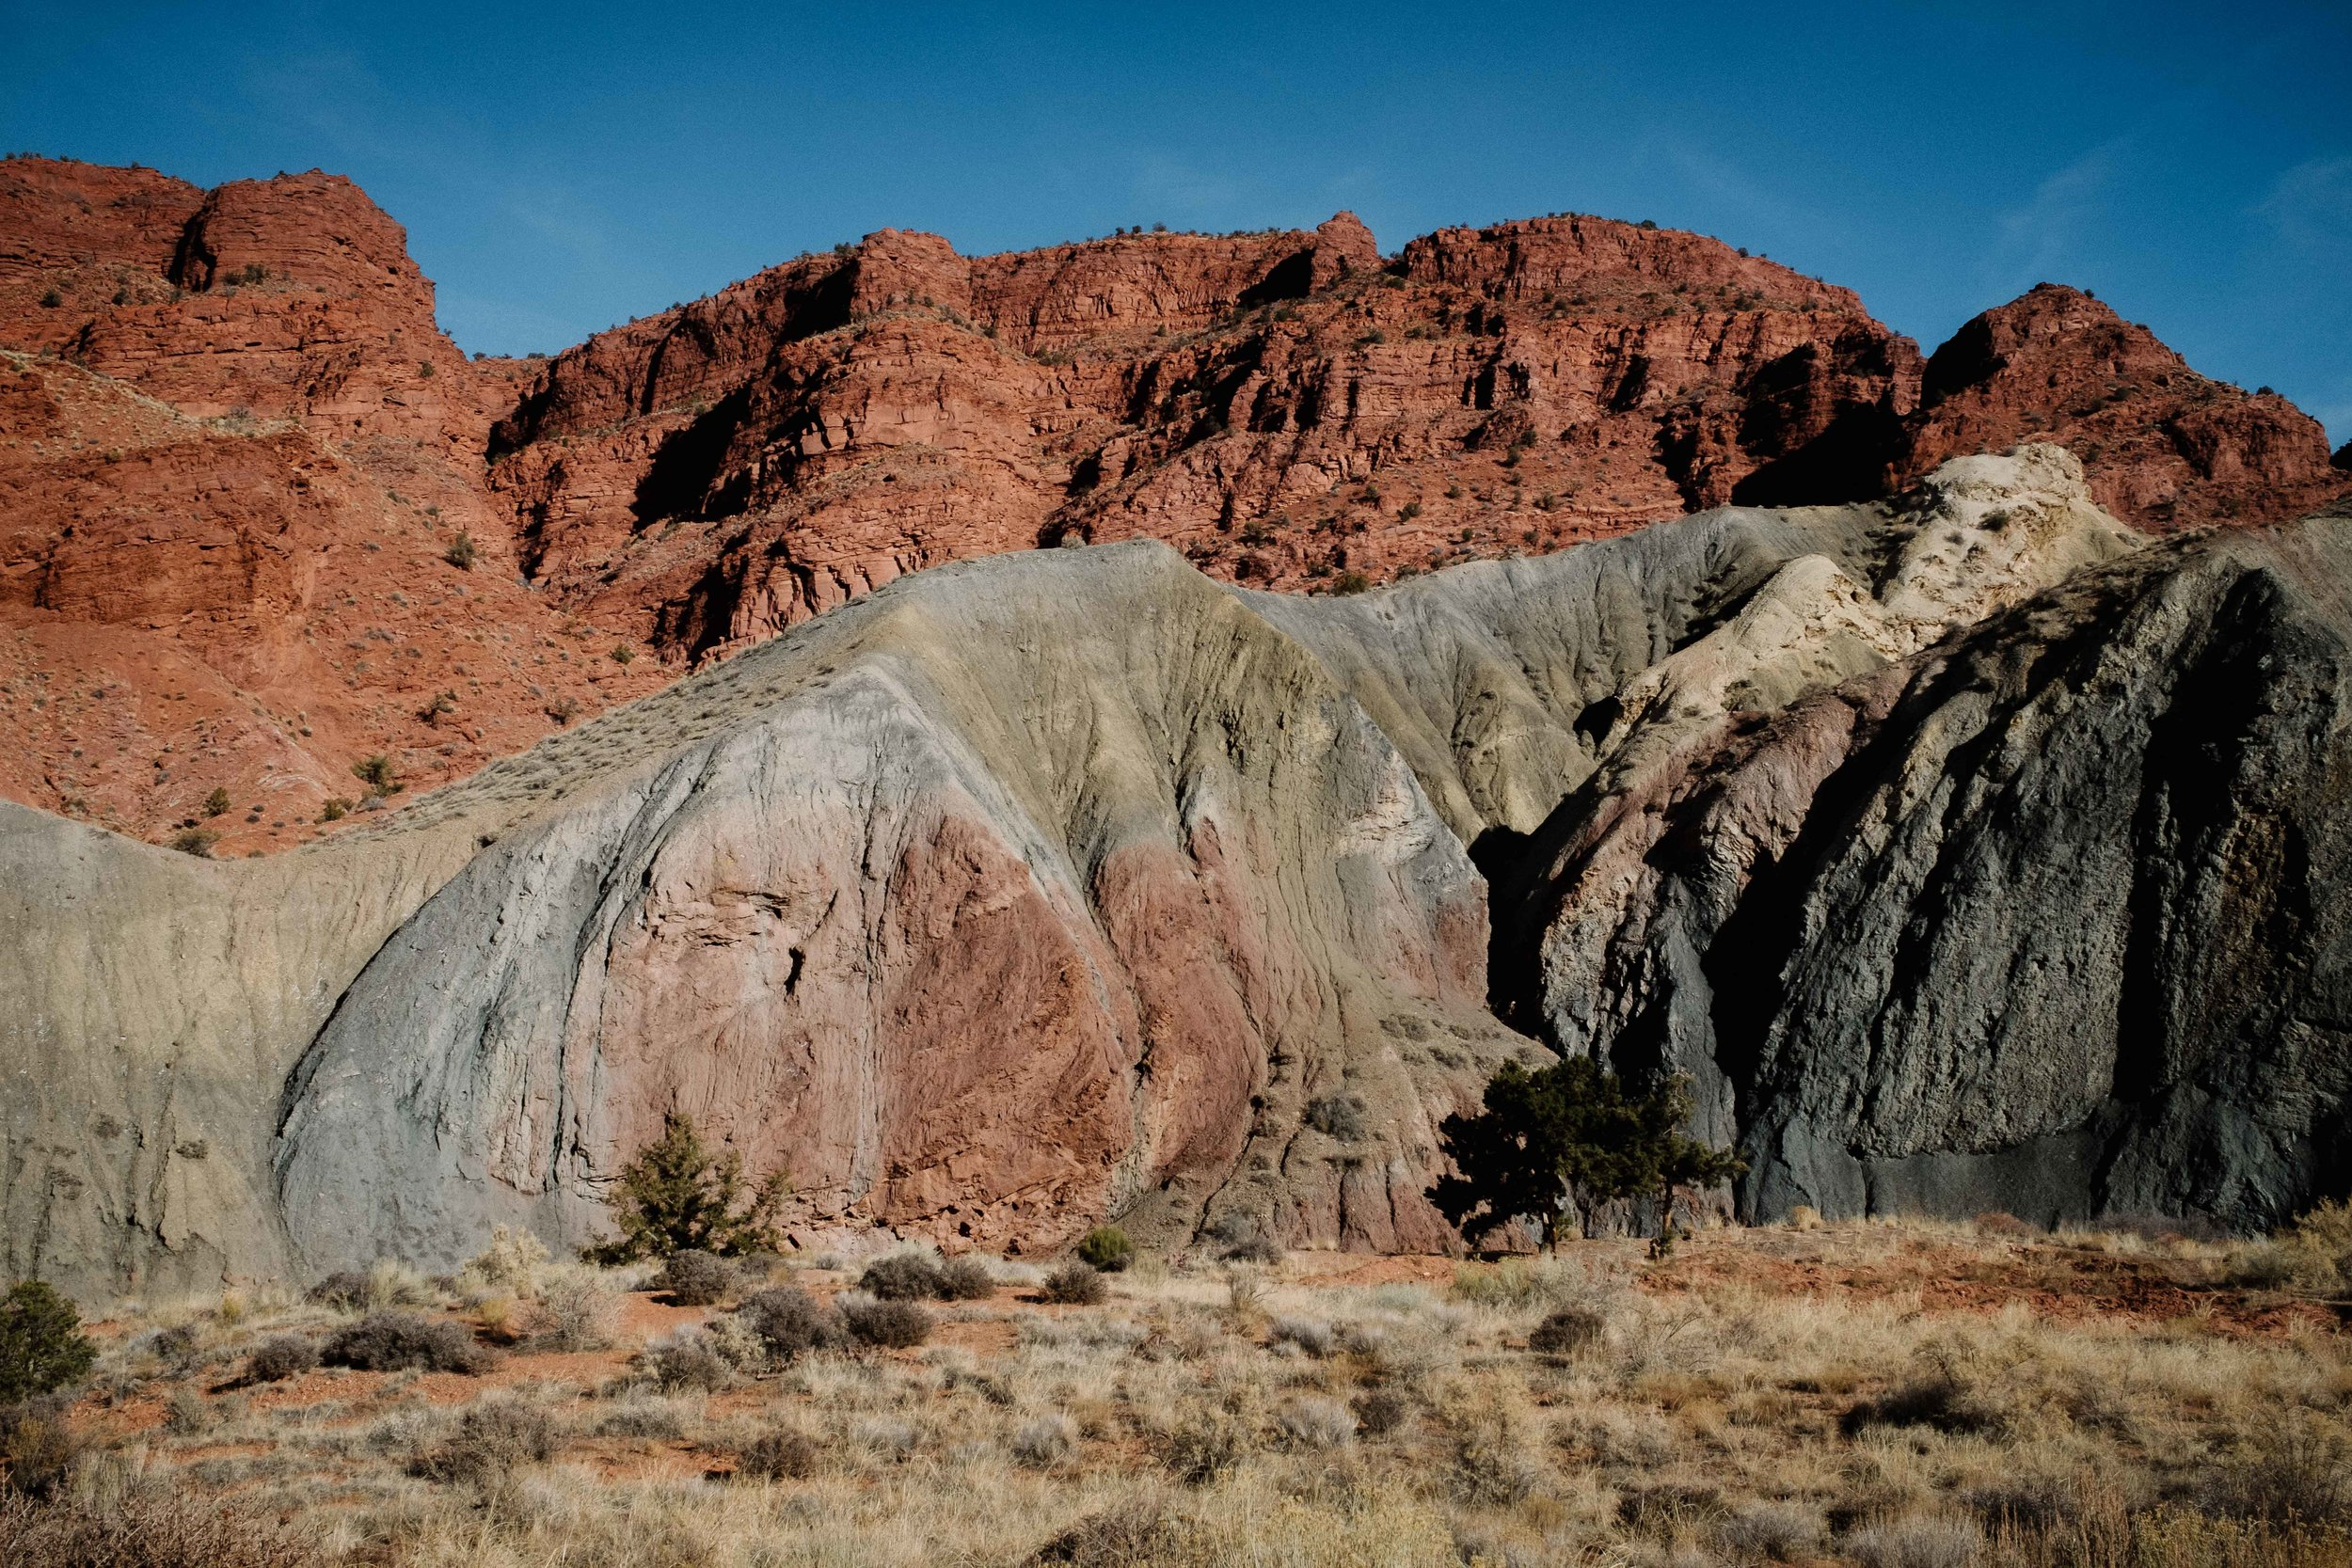 The various colors of of rock formation coming from the sulpher in the area. Fuji X100F